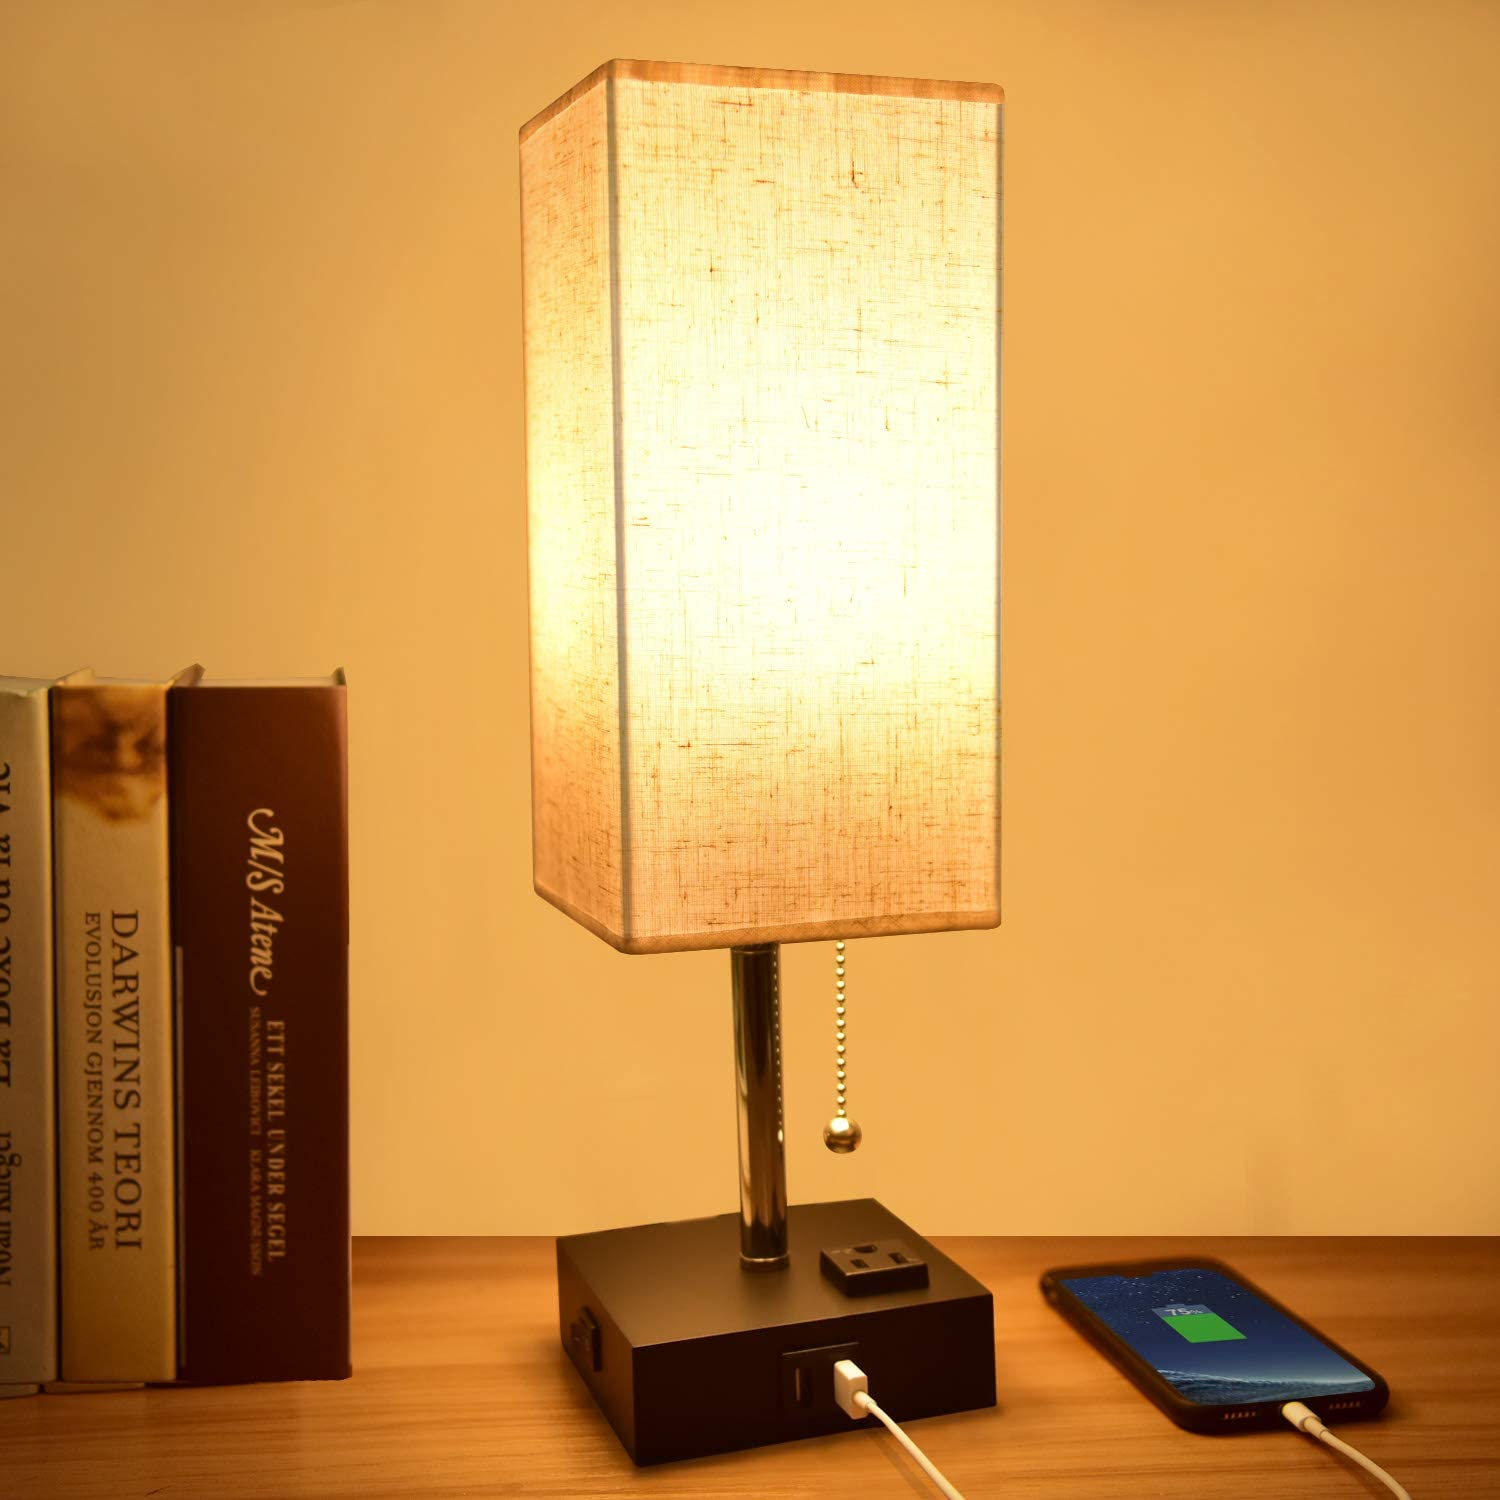 USB Table Lamp,Comzler Modern Bedside Lamp with USB Port to Recharging Your Devices,Warm LED Bulb Included,Ambient Light, Fabric Shade, Nightstand Lamp Perfect for Bedroom